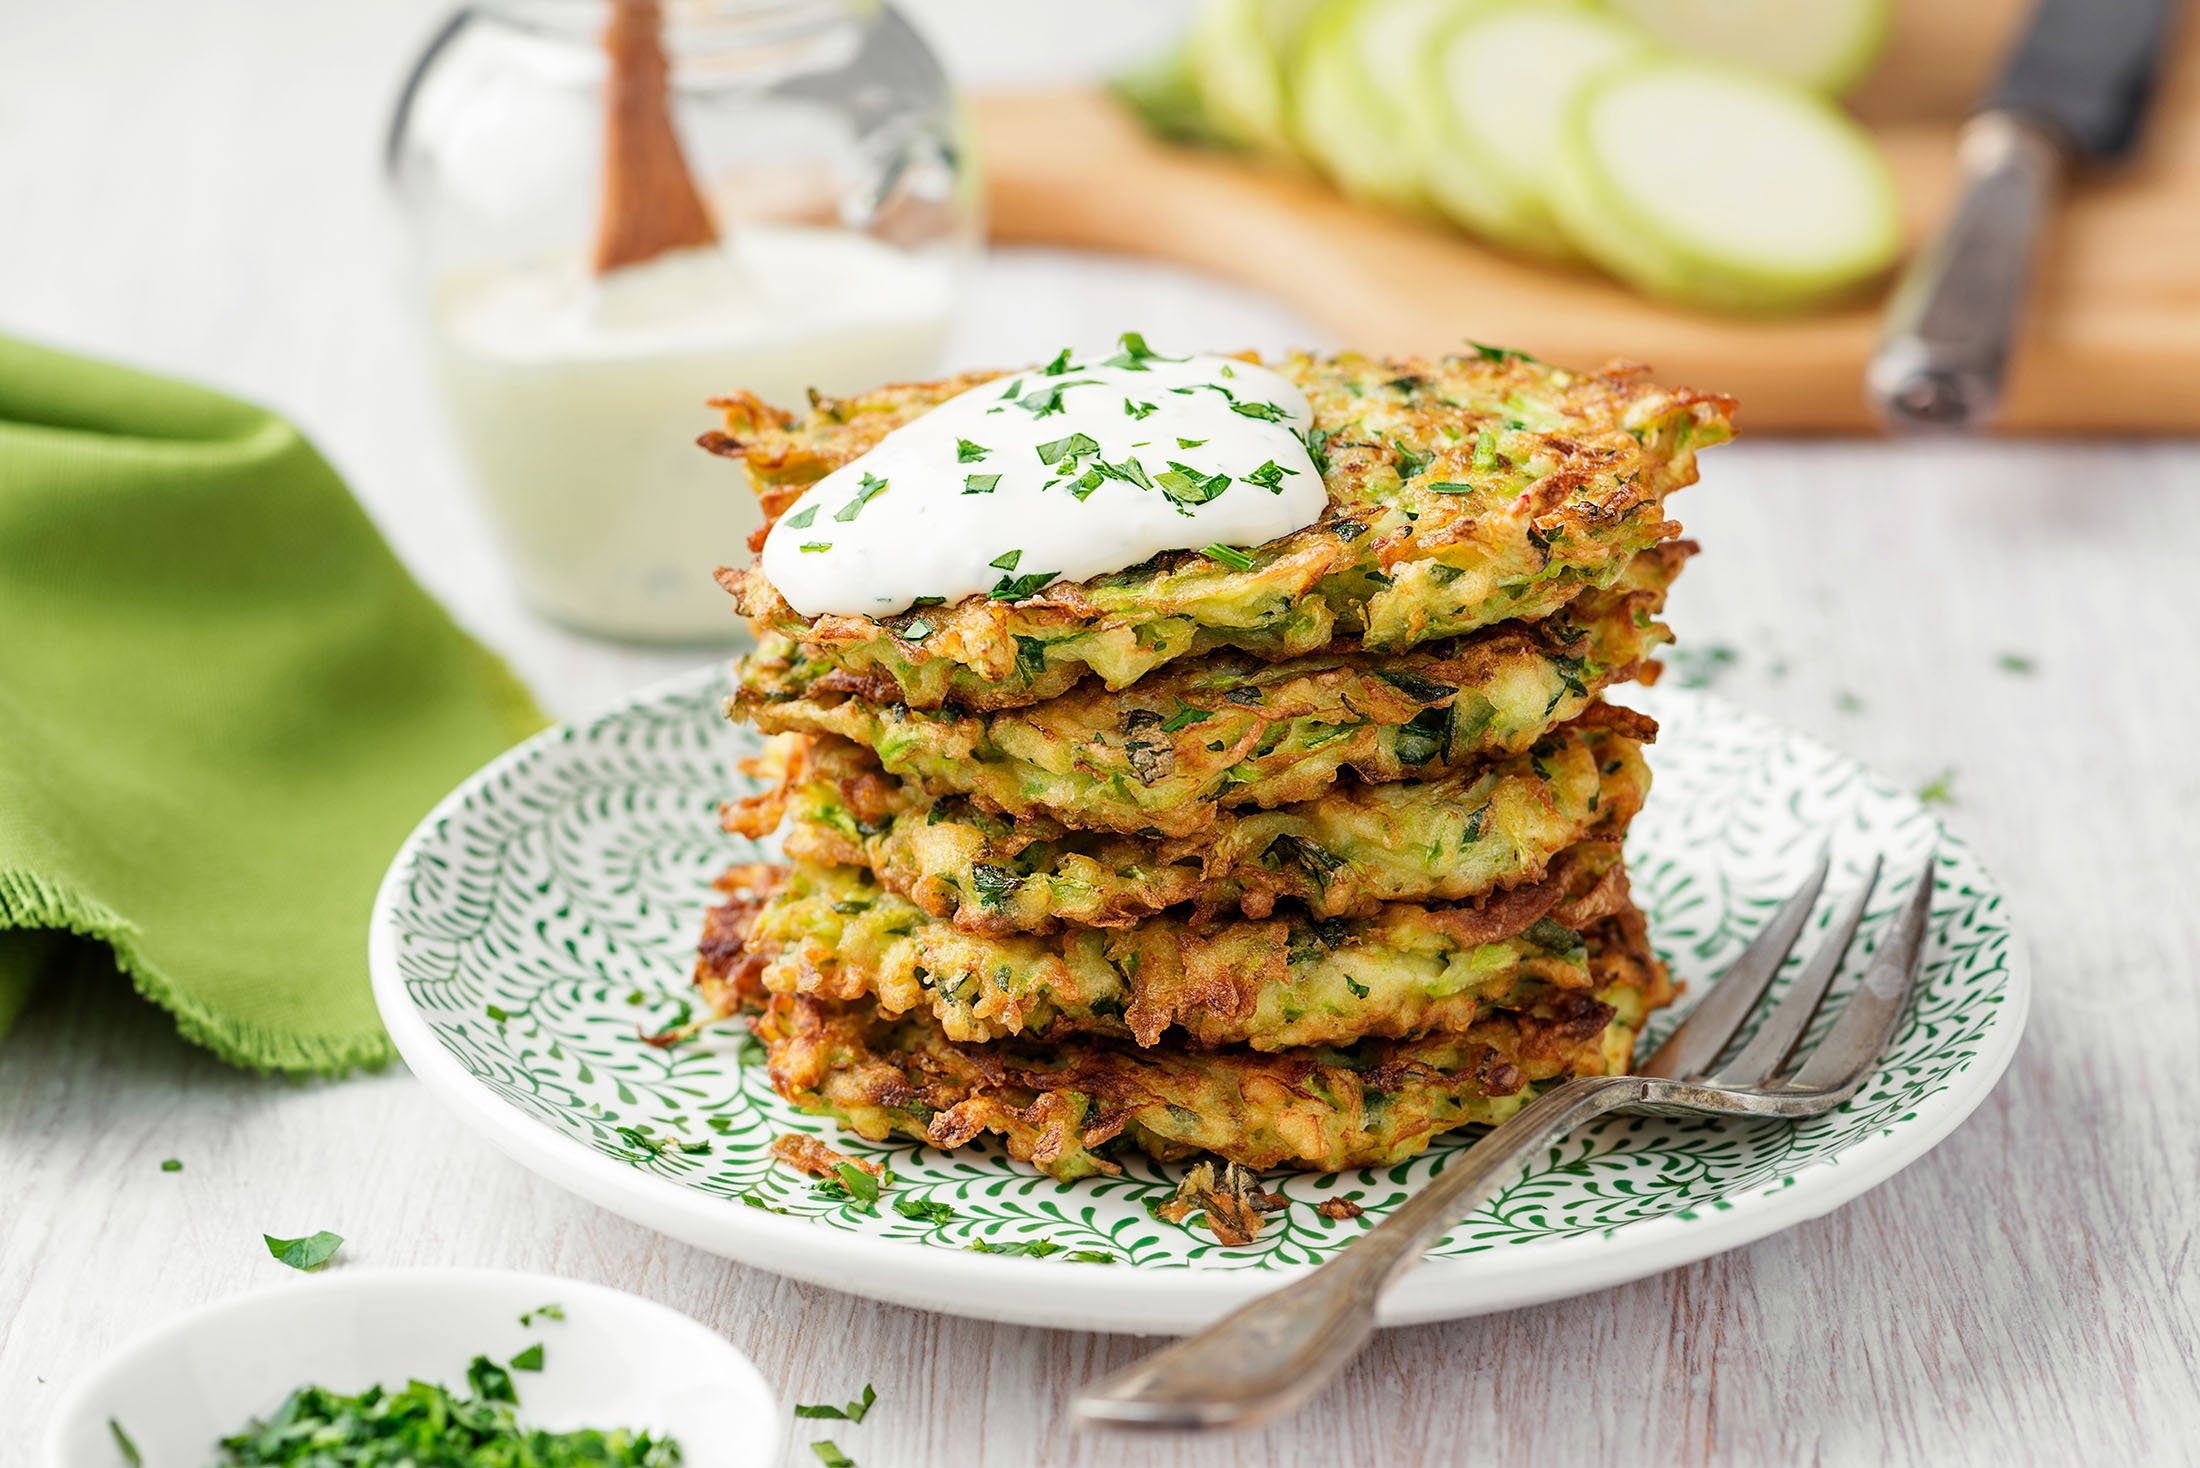 Often served with fresh herbs and yogurt, mücver are a staple food in Turkish cuisine. (Shutterstock Photo)